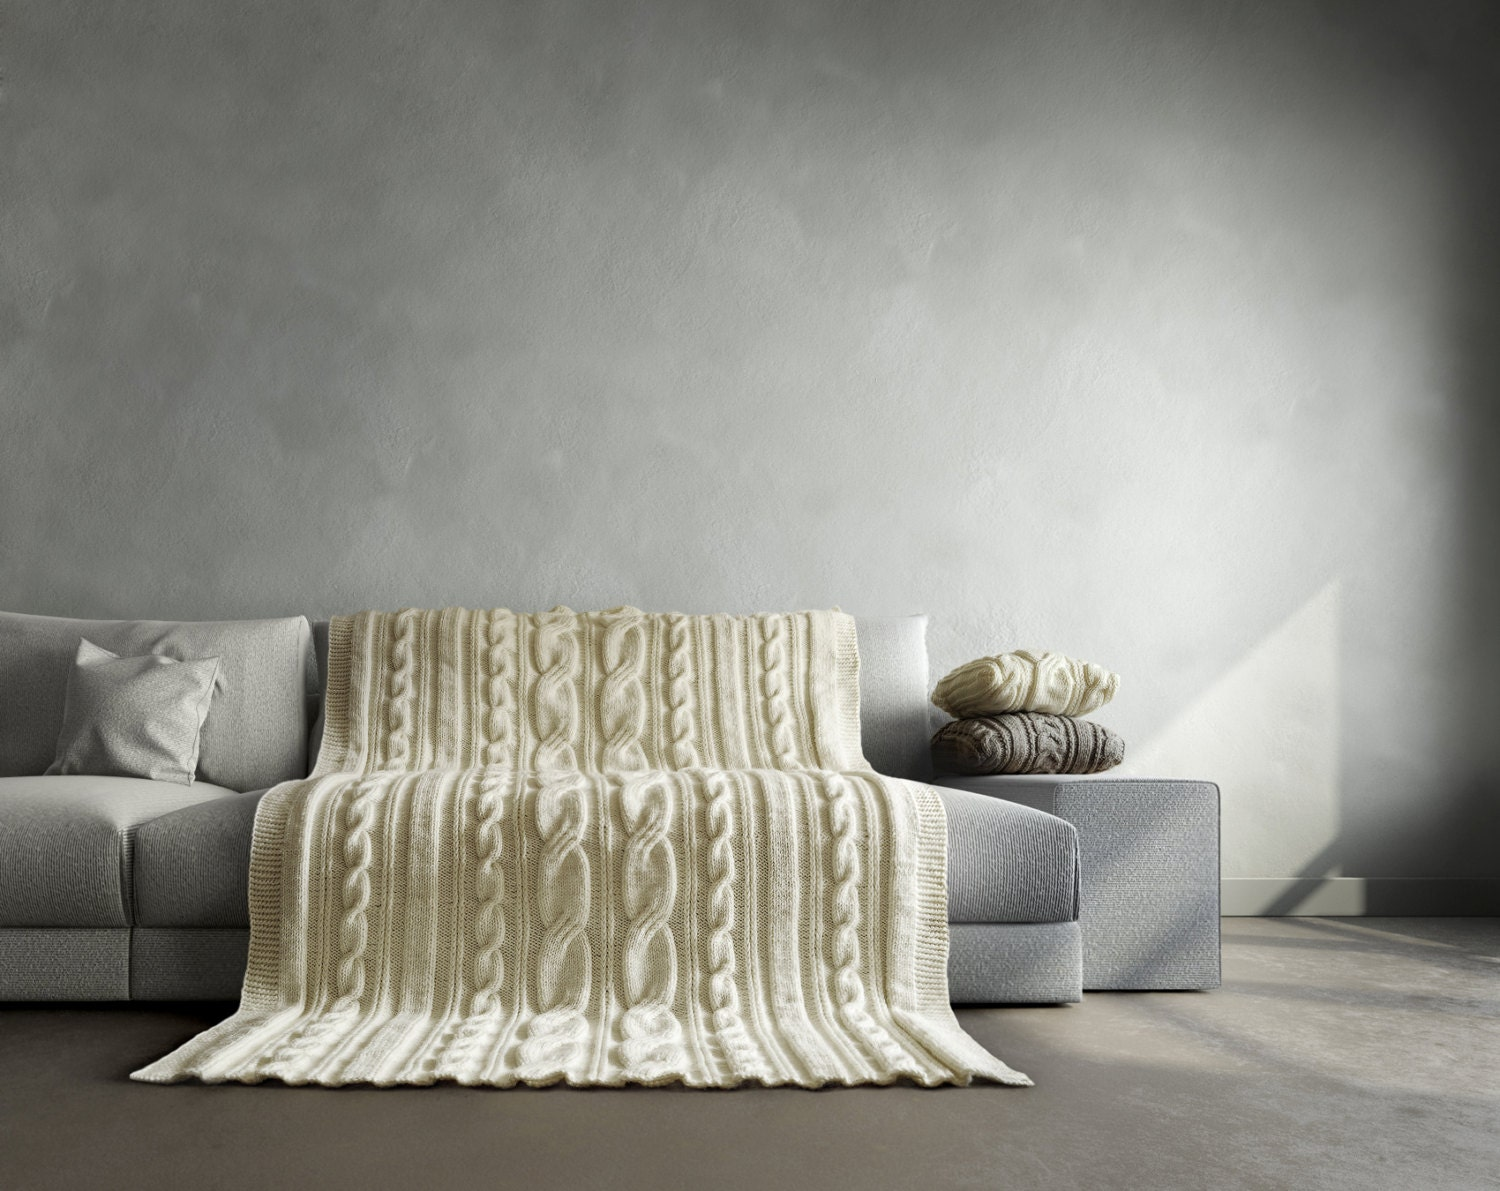 Cable Knit Blanket It Fits Perfect For Bed And Couch Will Be